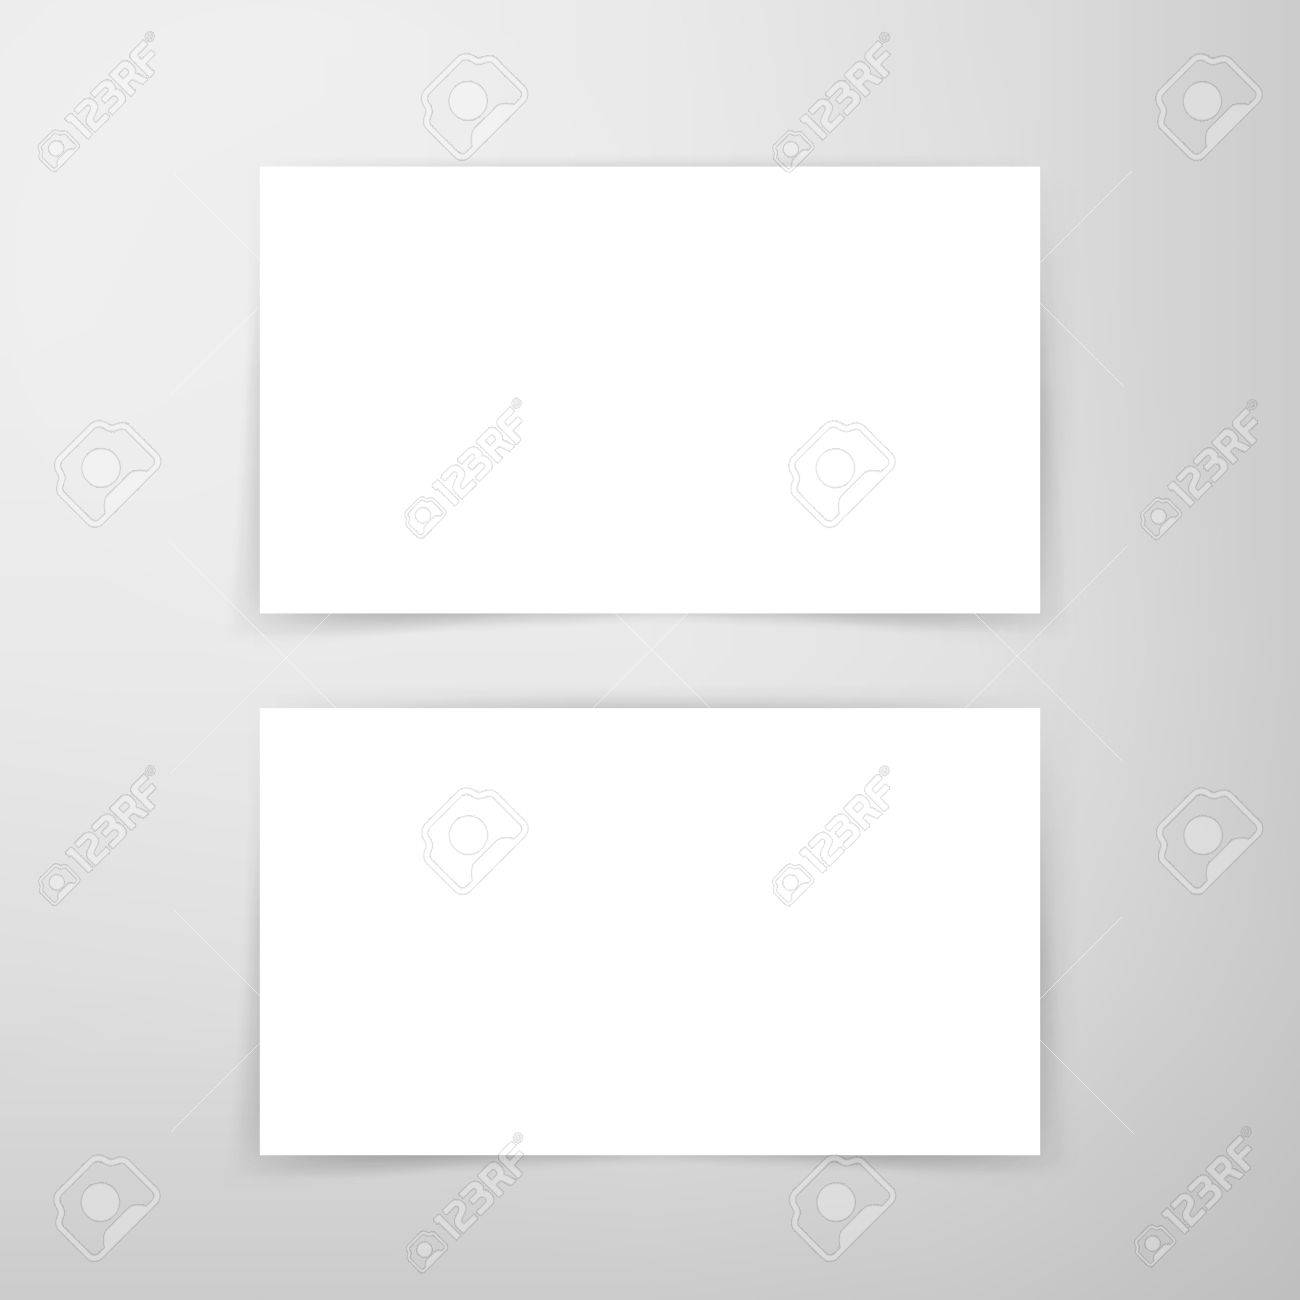 Blank business card mockup vector illustration of brand identity blank business card mockup vector illustration of brand identity design stock vector 61365378 reheart Choice Image